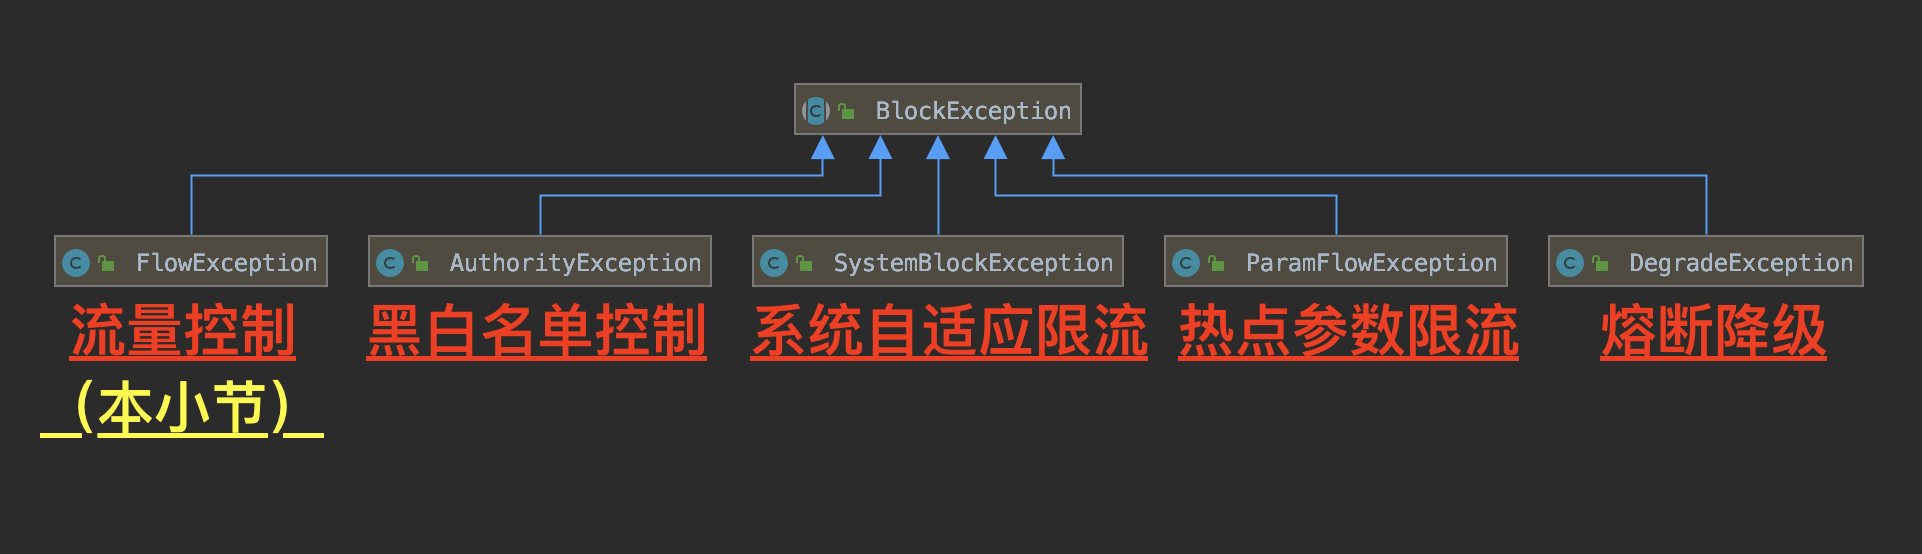 BlockException 类图